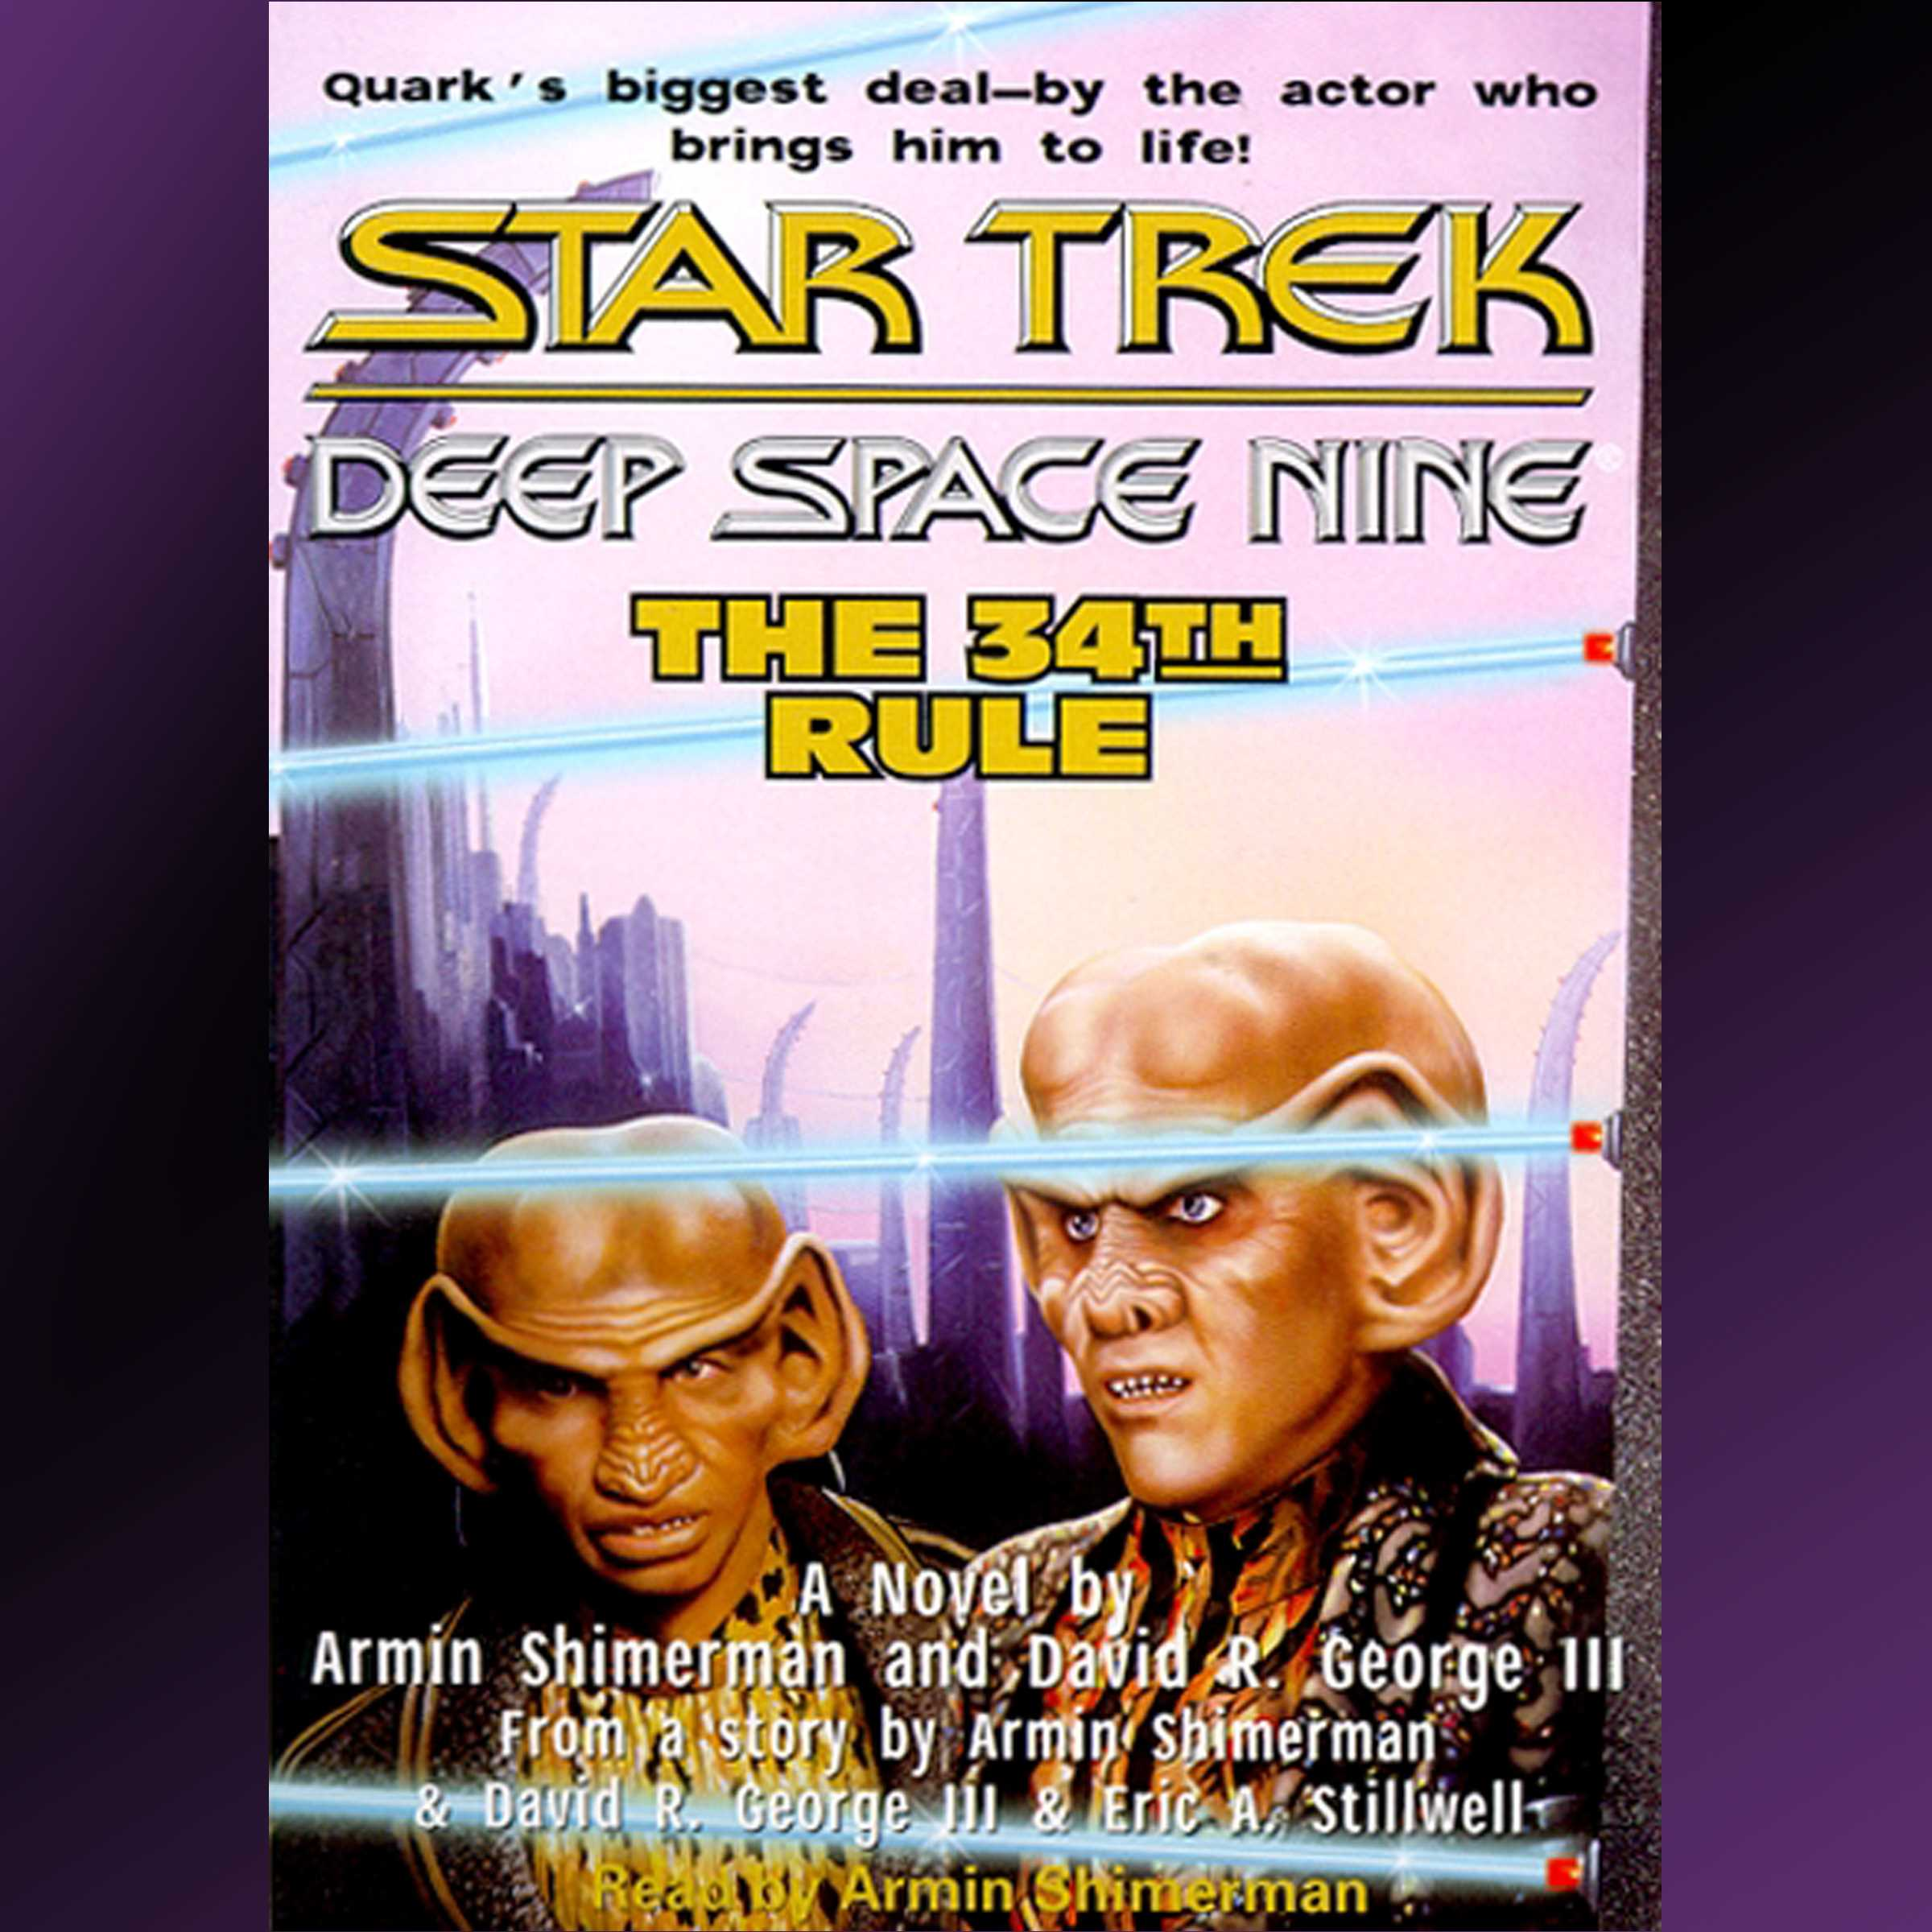 The-star-trek-deep-space-nine-the-34th-rule-9780743546249_hr